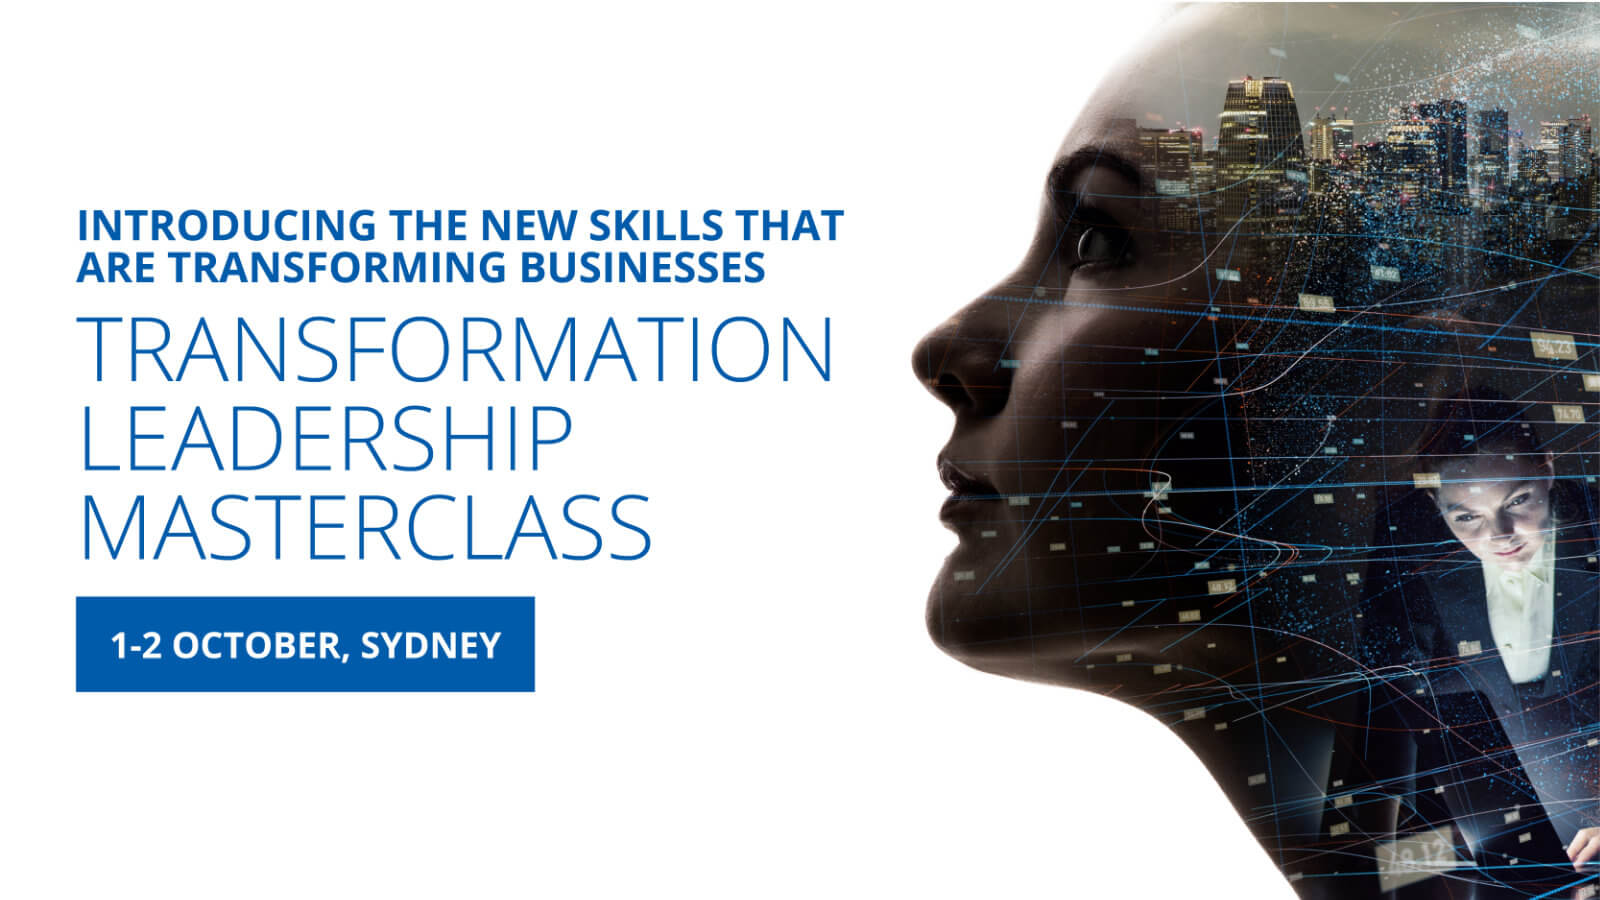 Transformation Leadership Masterclass